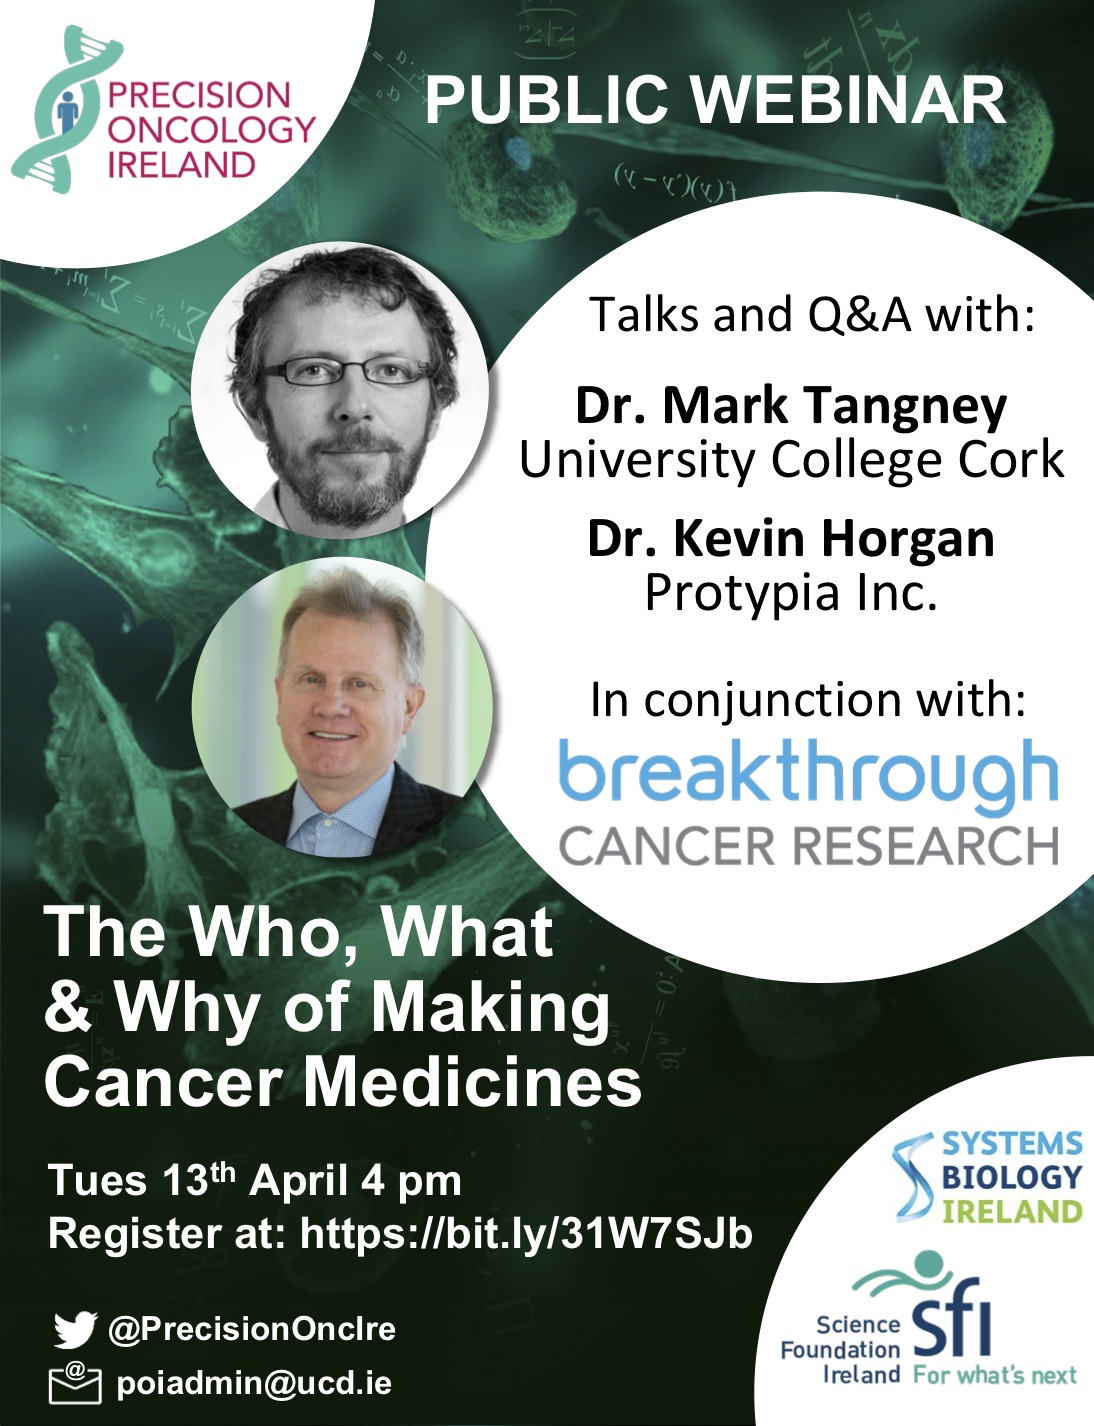 The Who, What, and Why of Making Cancer Medicines